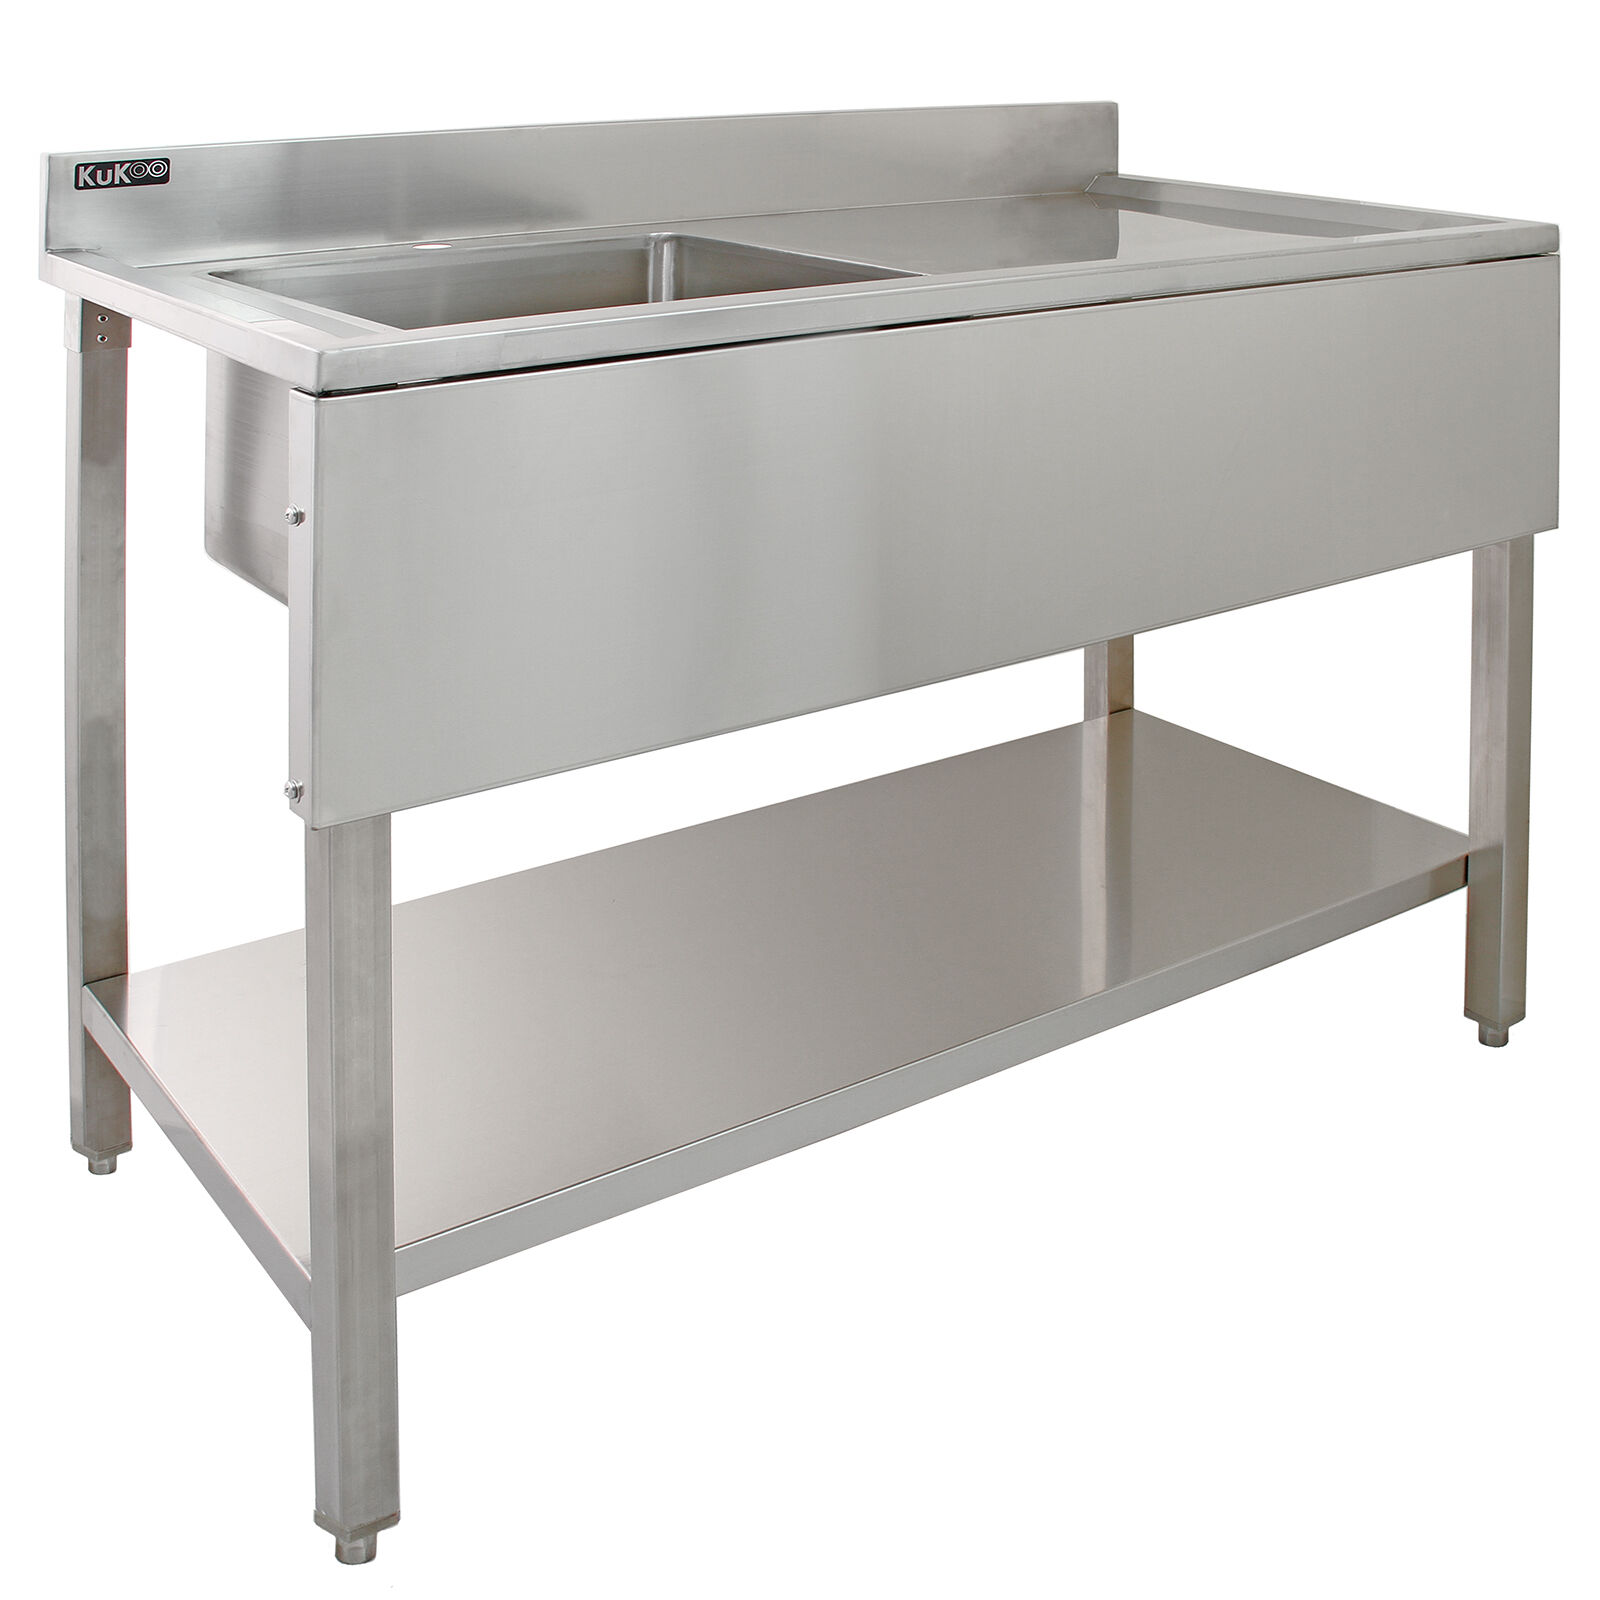 office industrial restaurant catering kitchen equipment units sinks ...